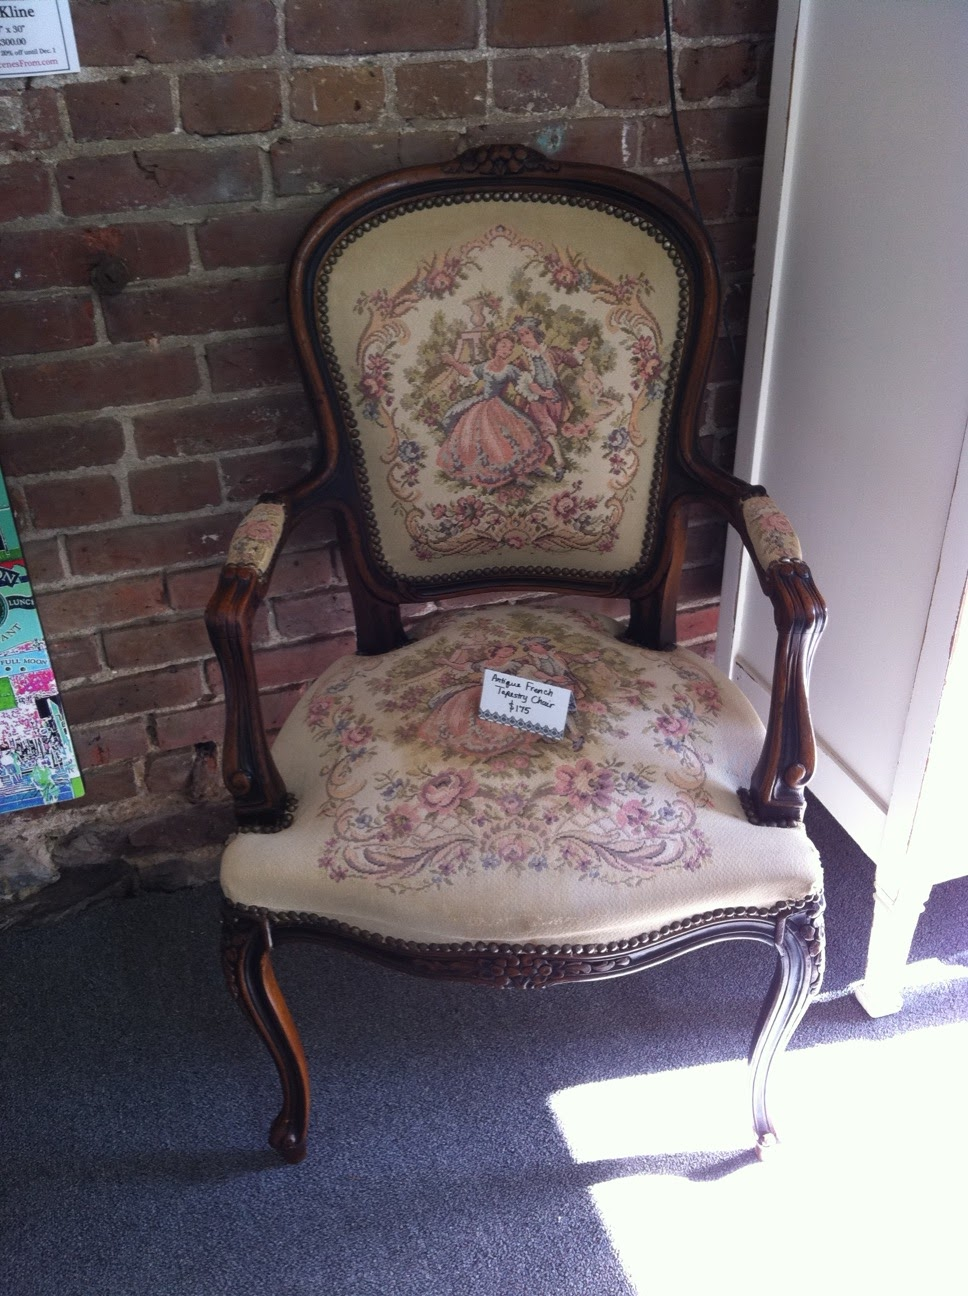 Antique School Bench and French Tapestry Chair - Tiny's Lambertville: Antique School Bench And French Tapestry Chair